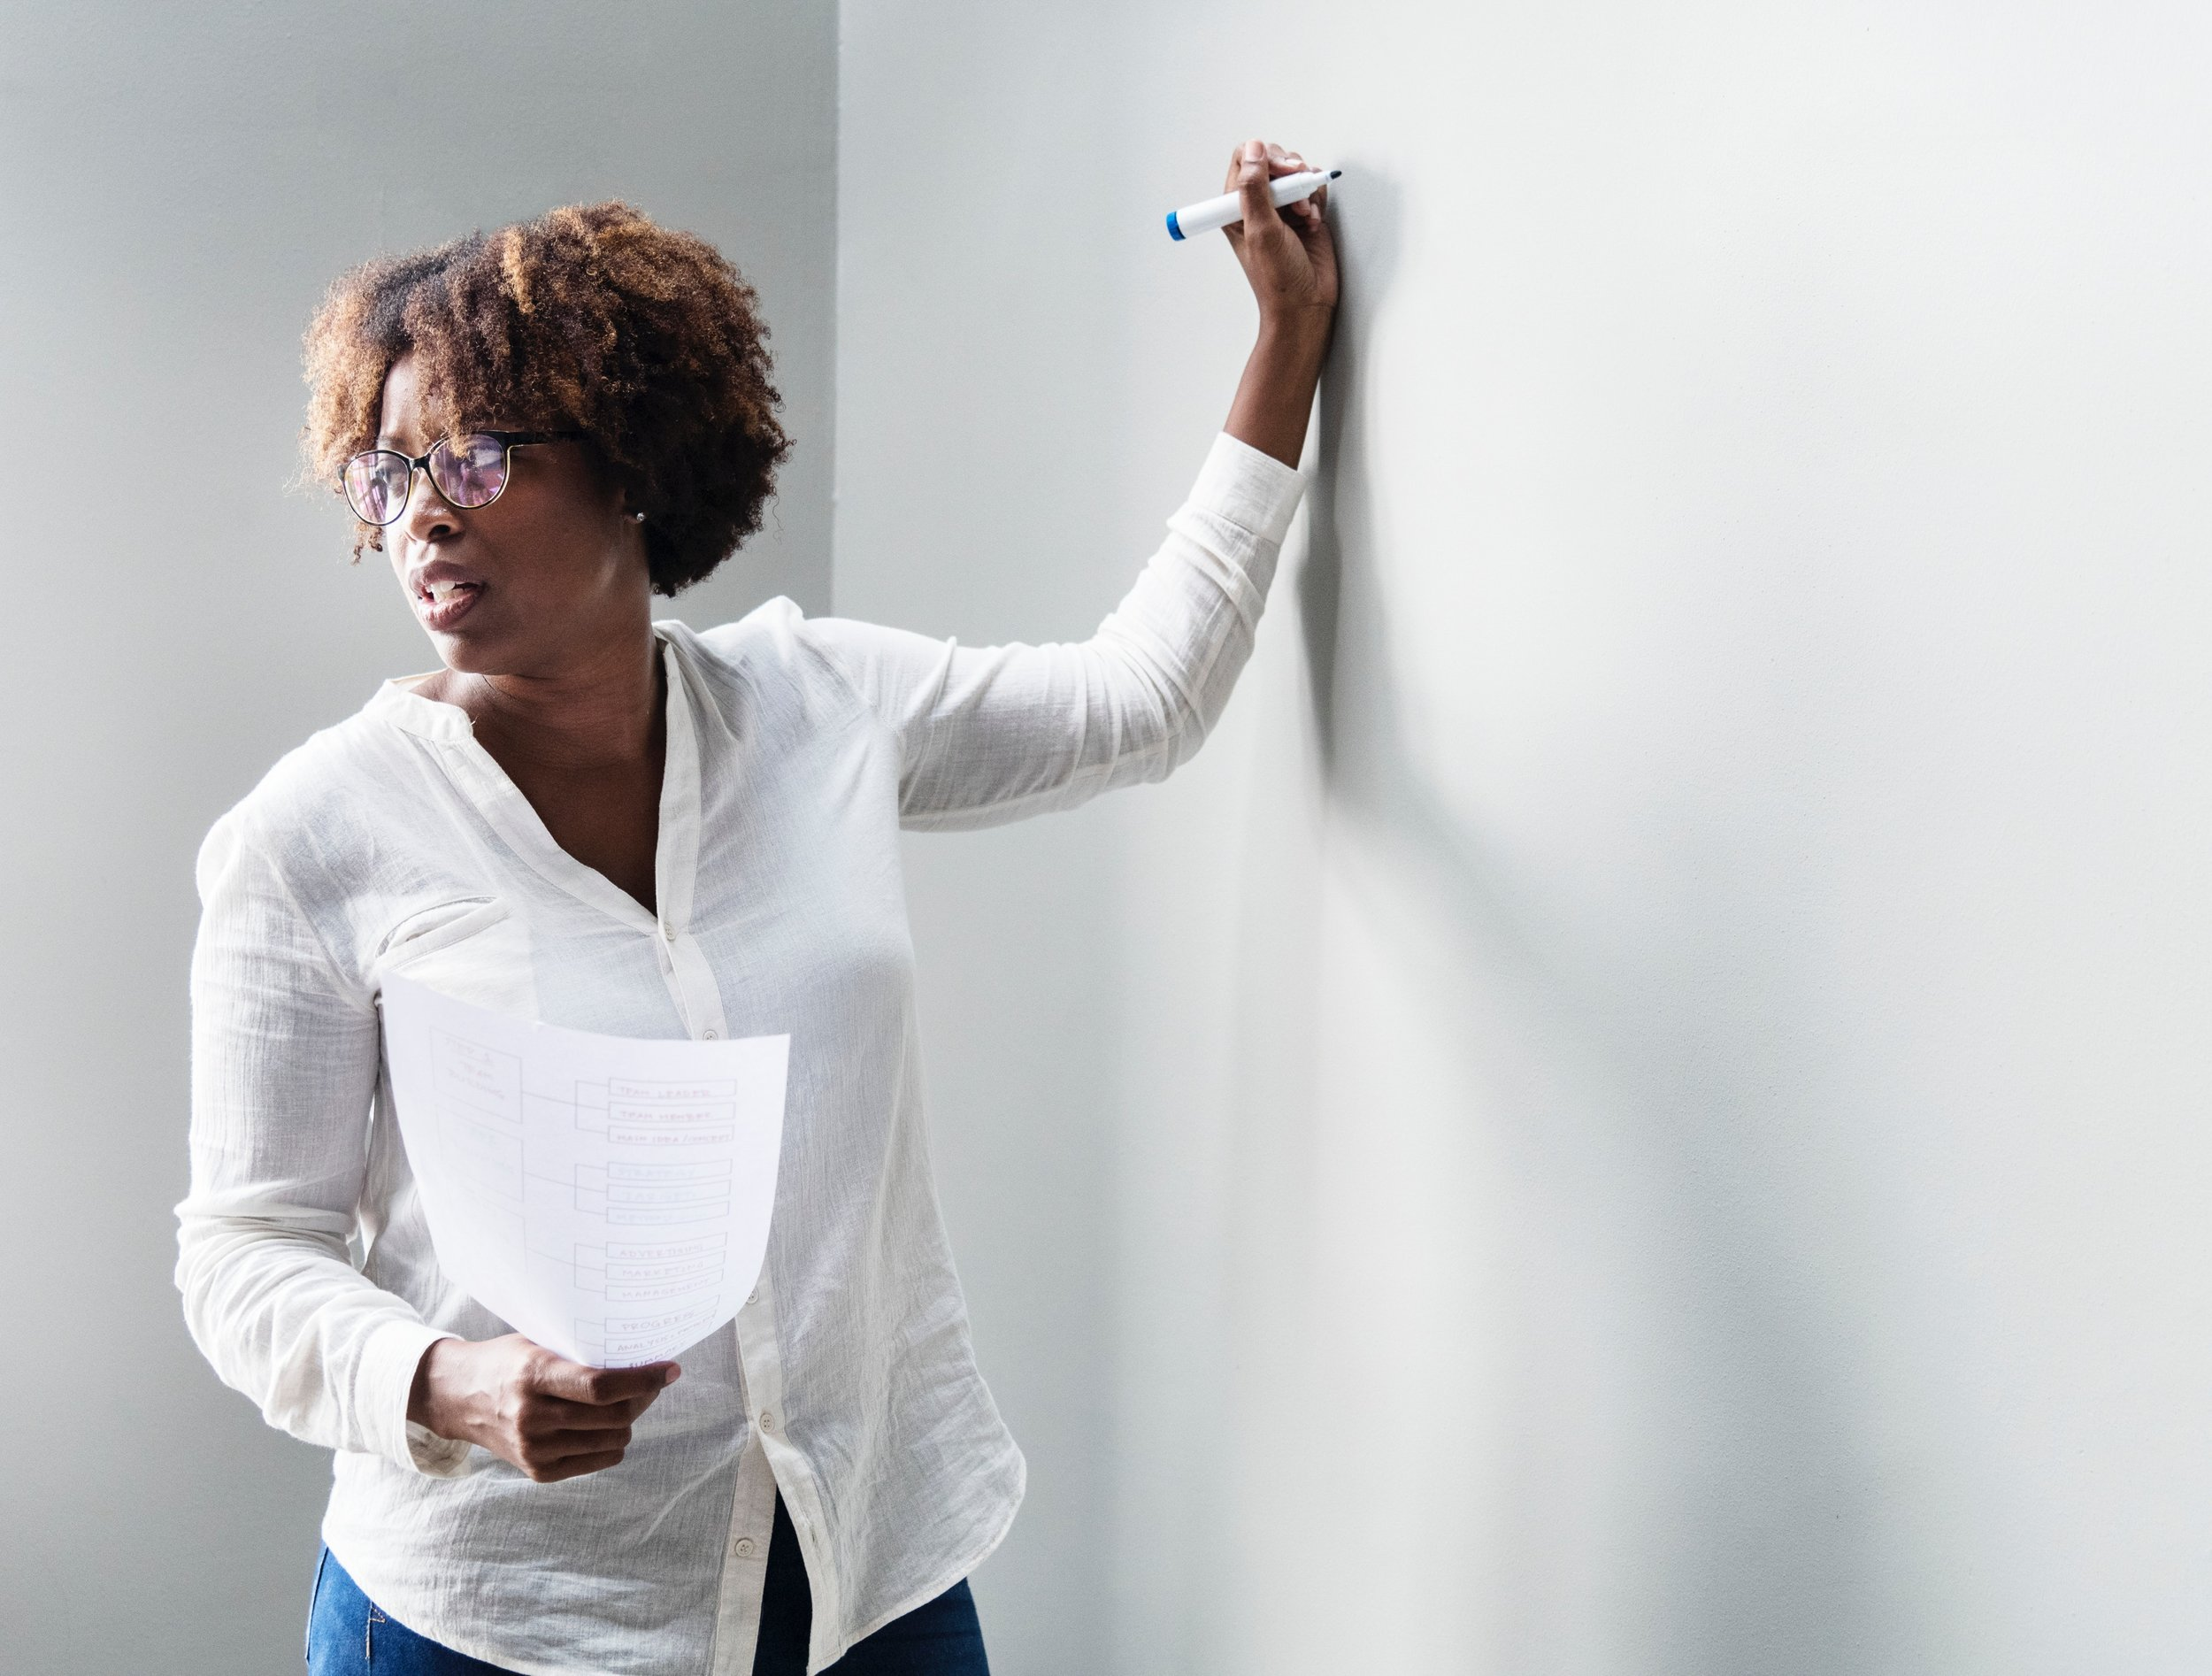 Invest in Personal Development - Understanding internal and external barriers to self-sufficiency and developing ways to overcome them is critical to succeeding in a new career.